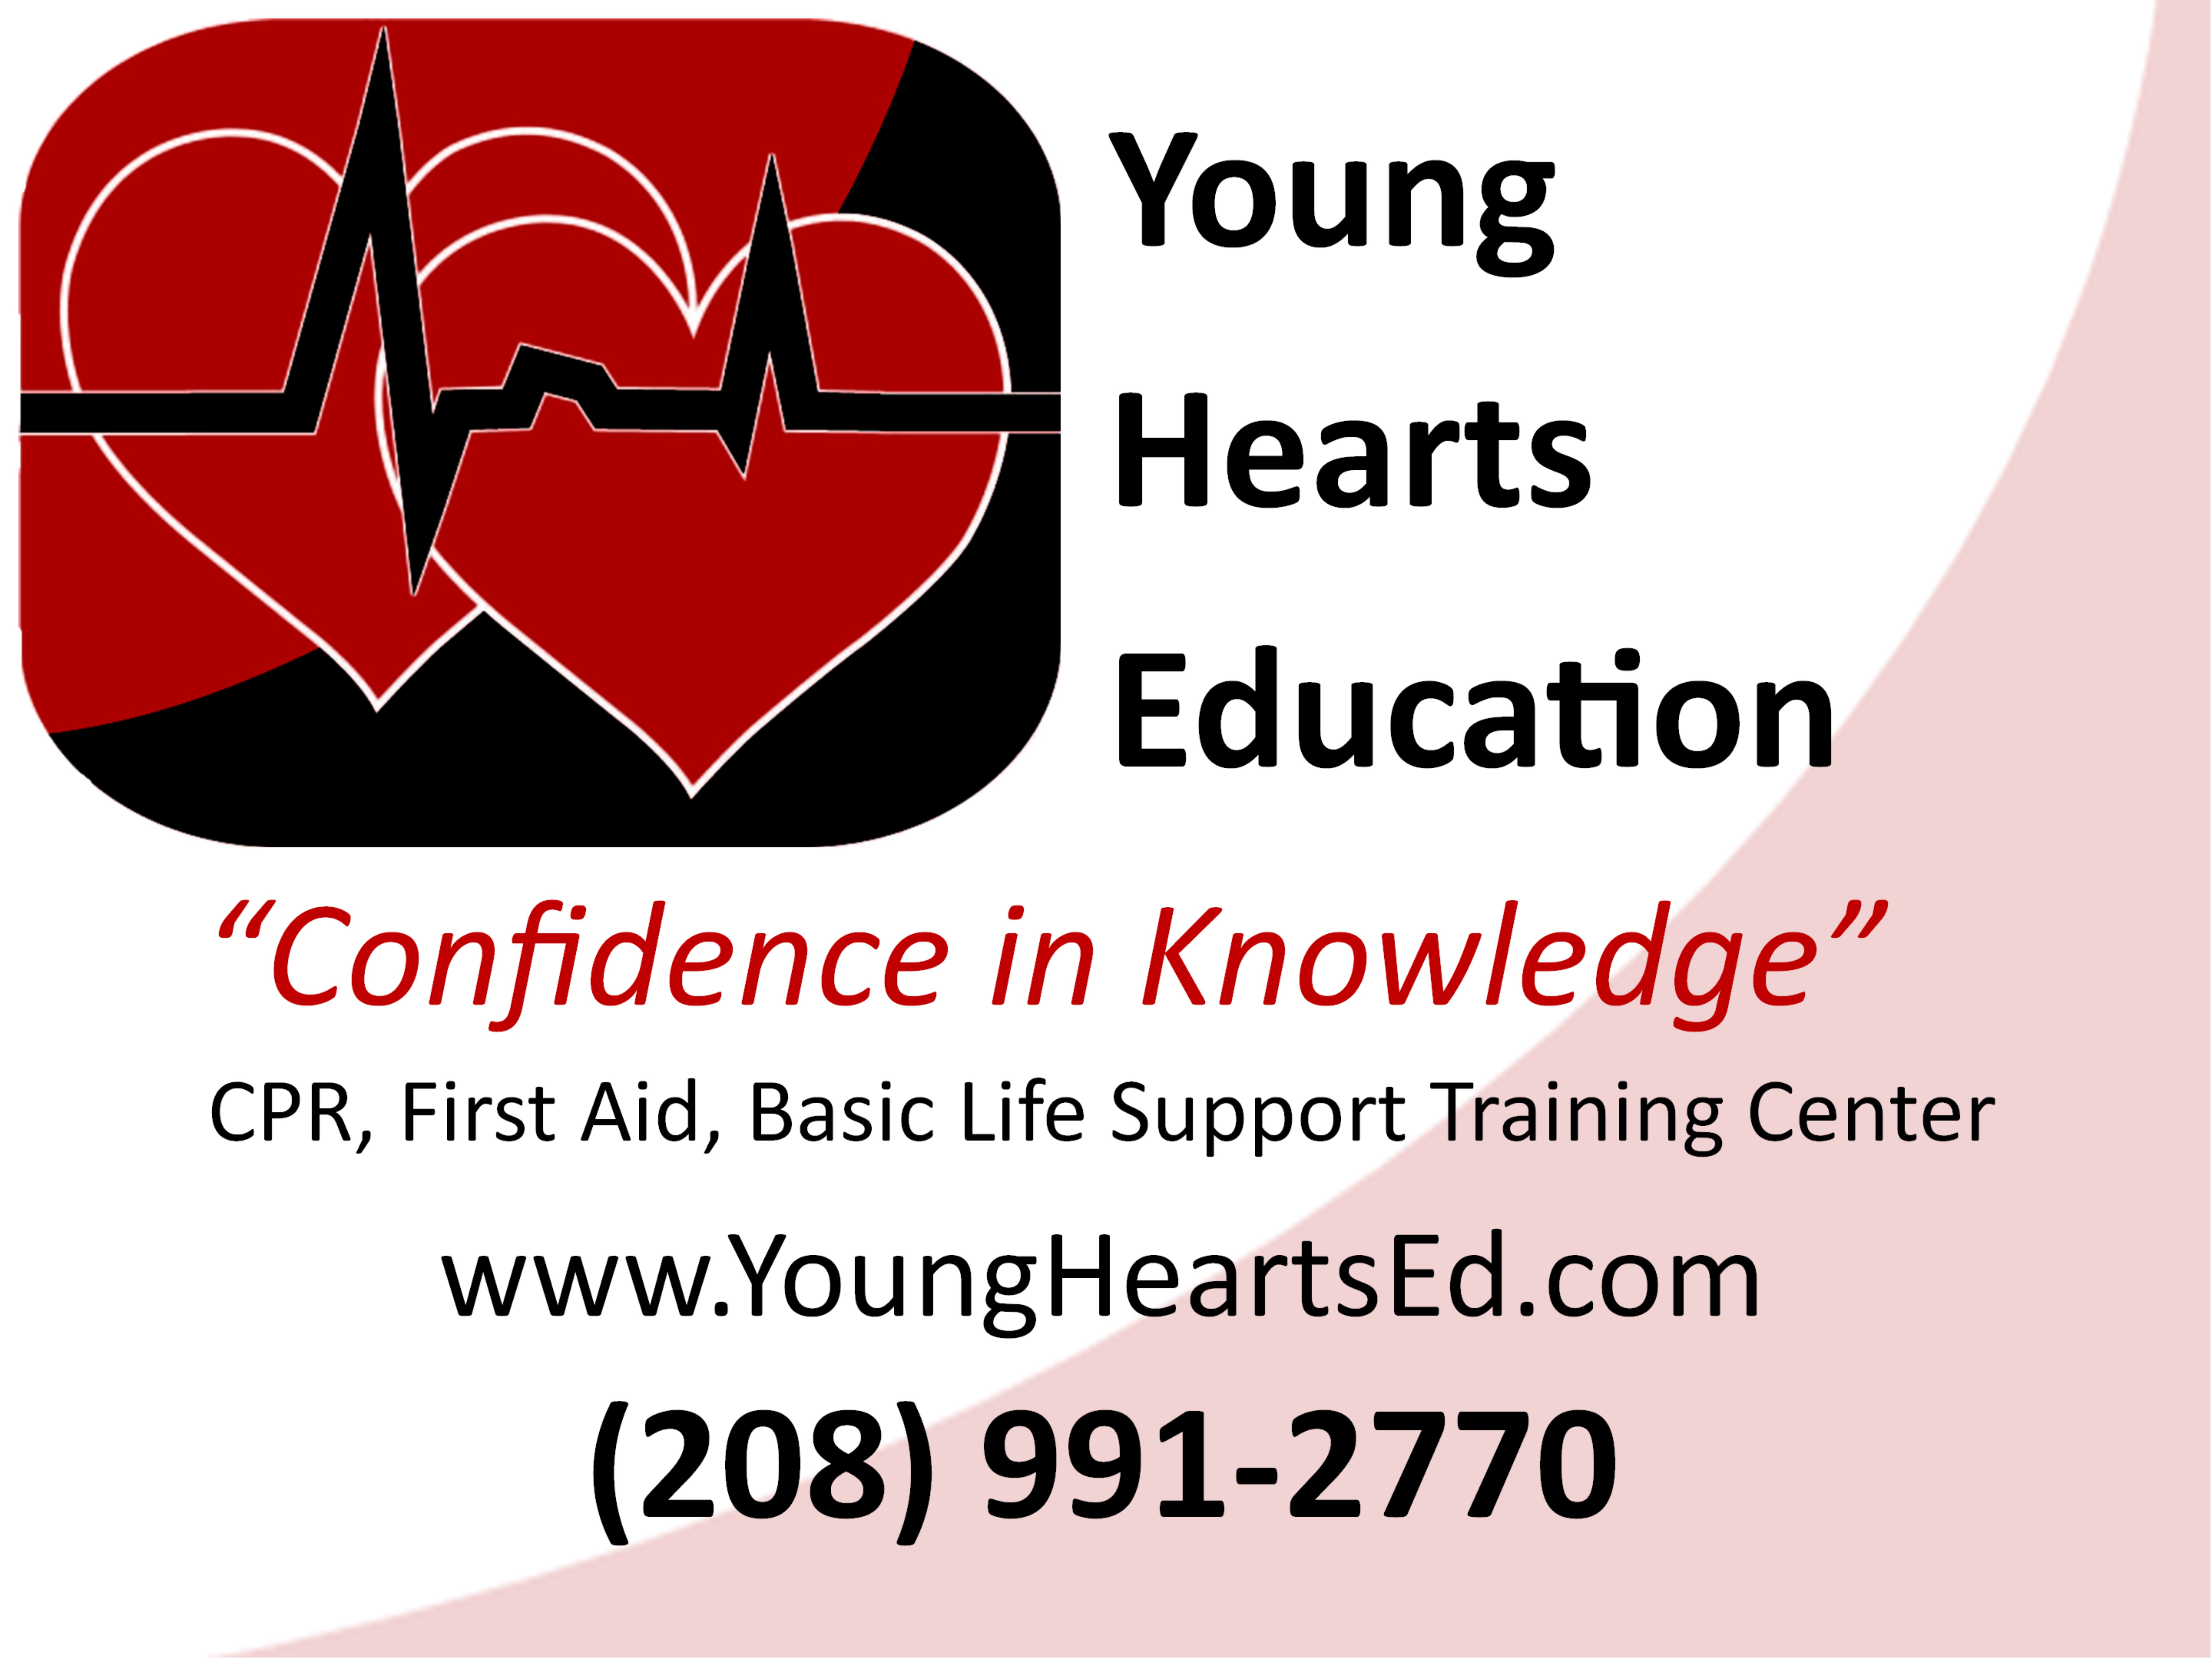 First aid training cpr classes bls classes and acls classes in schedule cpr programs 1betcityfo Gallery